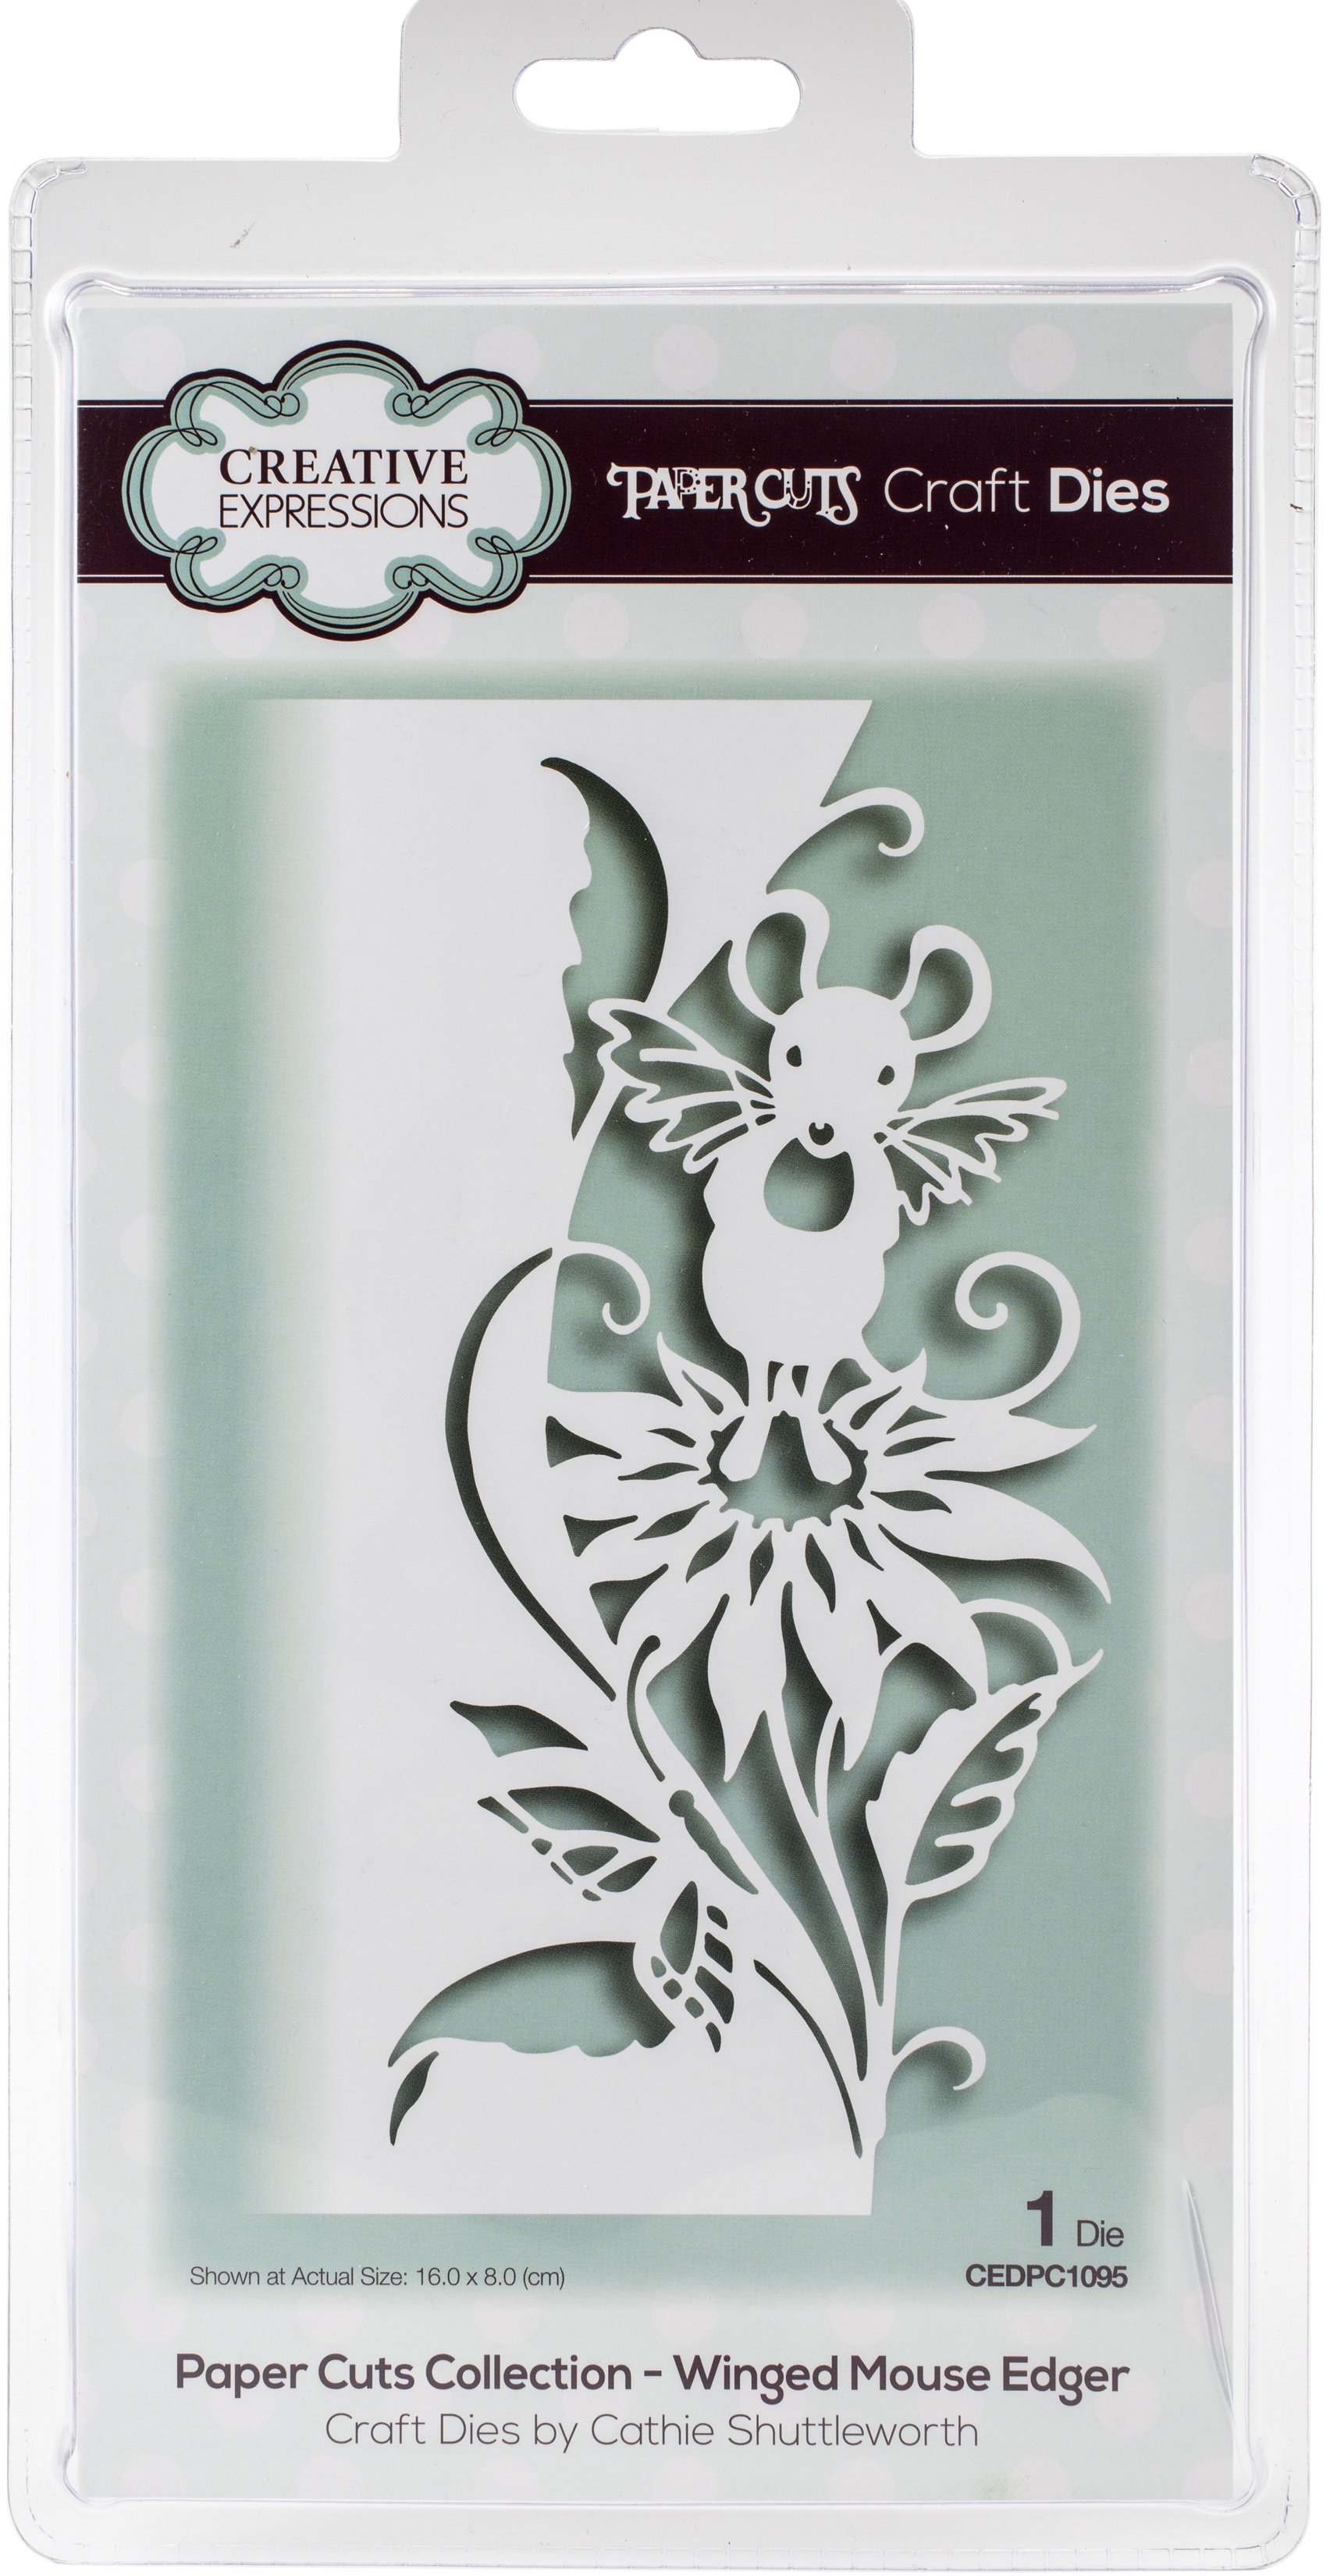 Creative Expressions Paper Cuts Edger Craft Dies-Winged Mouse